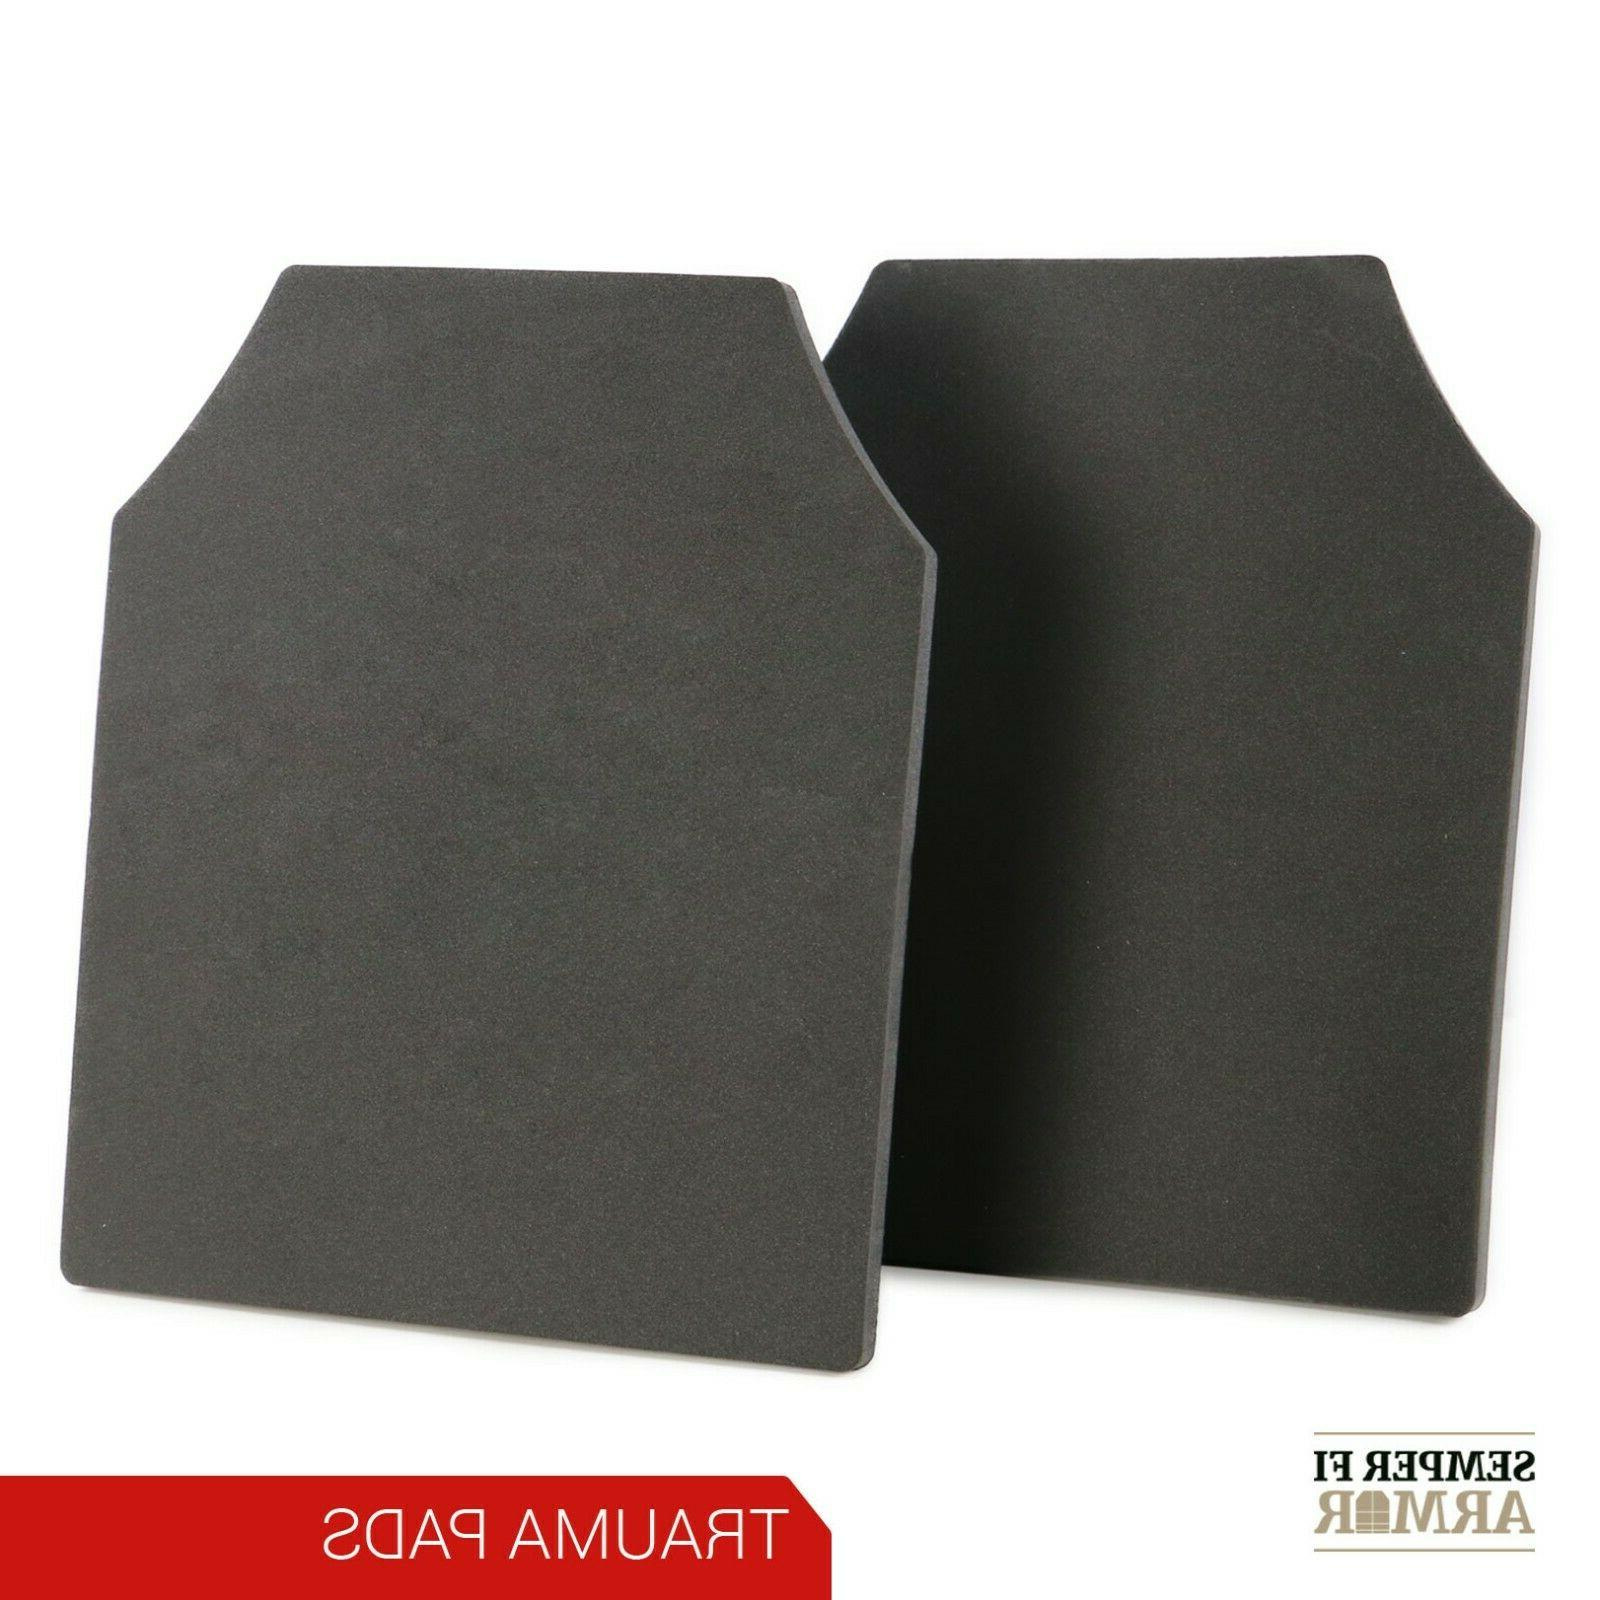 Body Armor AR500 3 Of 10x12 Plates In Stock Immediate